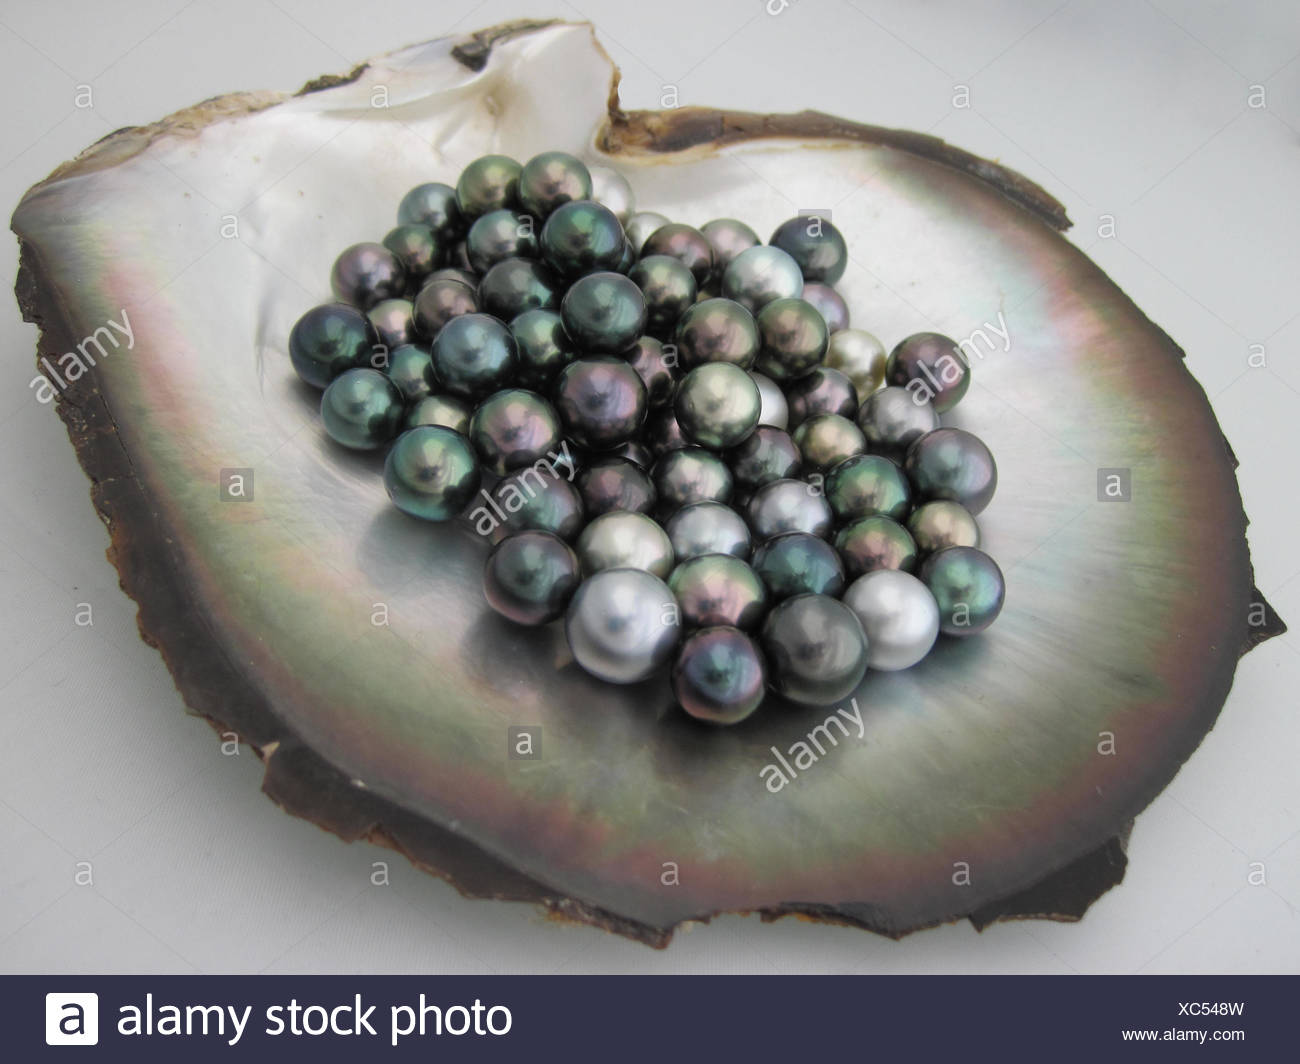 pearl mother of images clutch aherrmannsen best handbags purse on vintage pinterest pearls purses